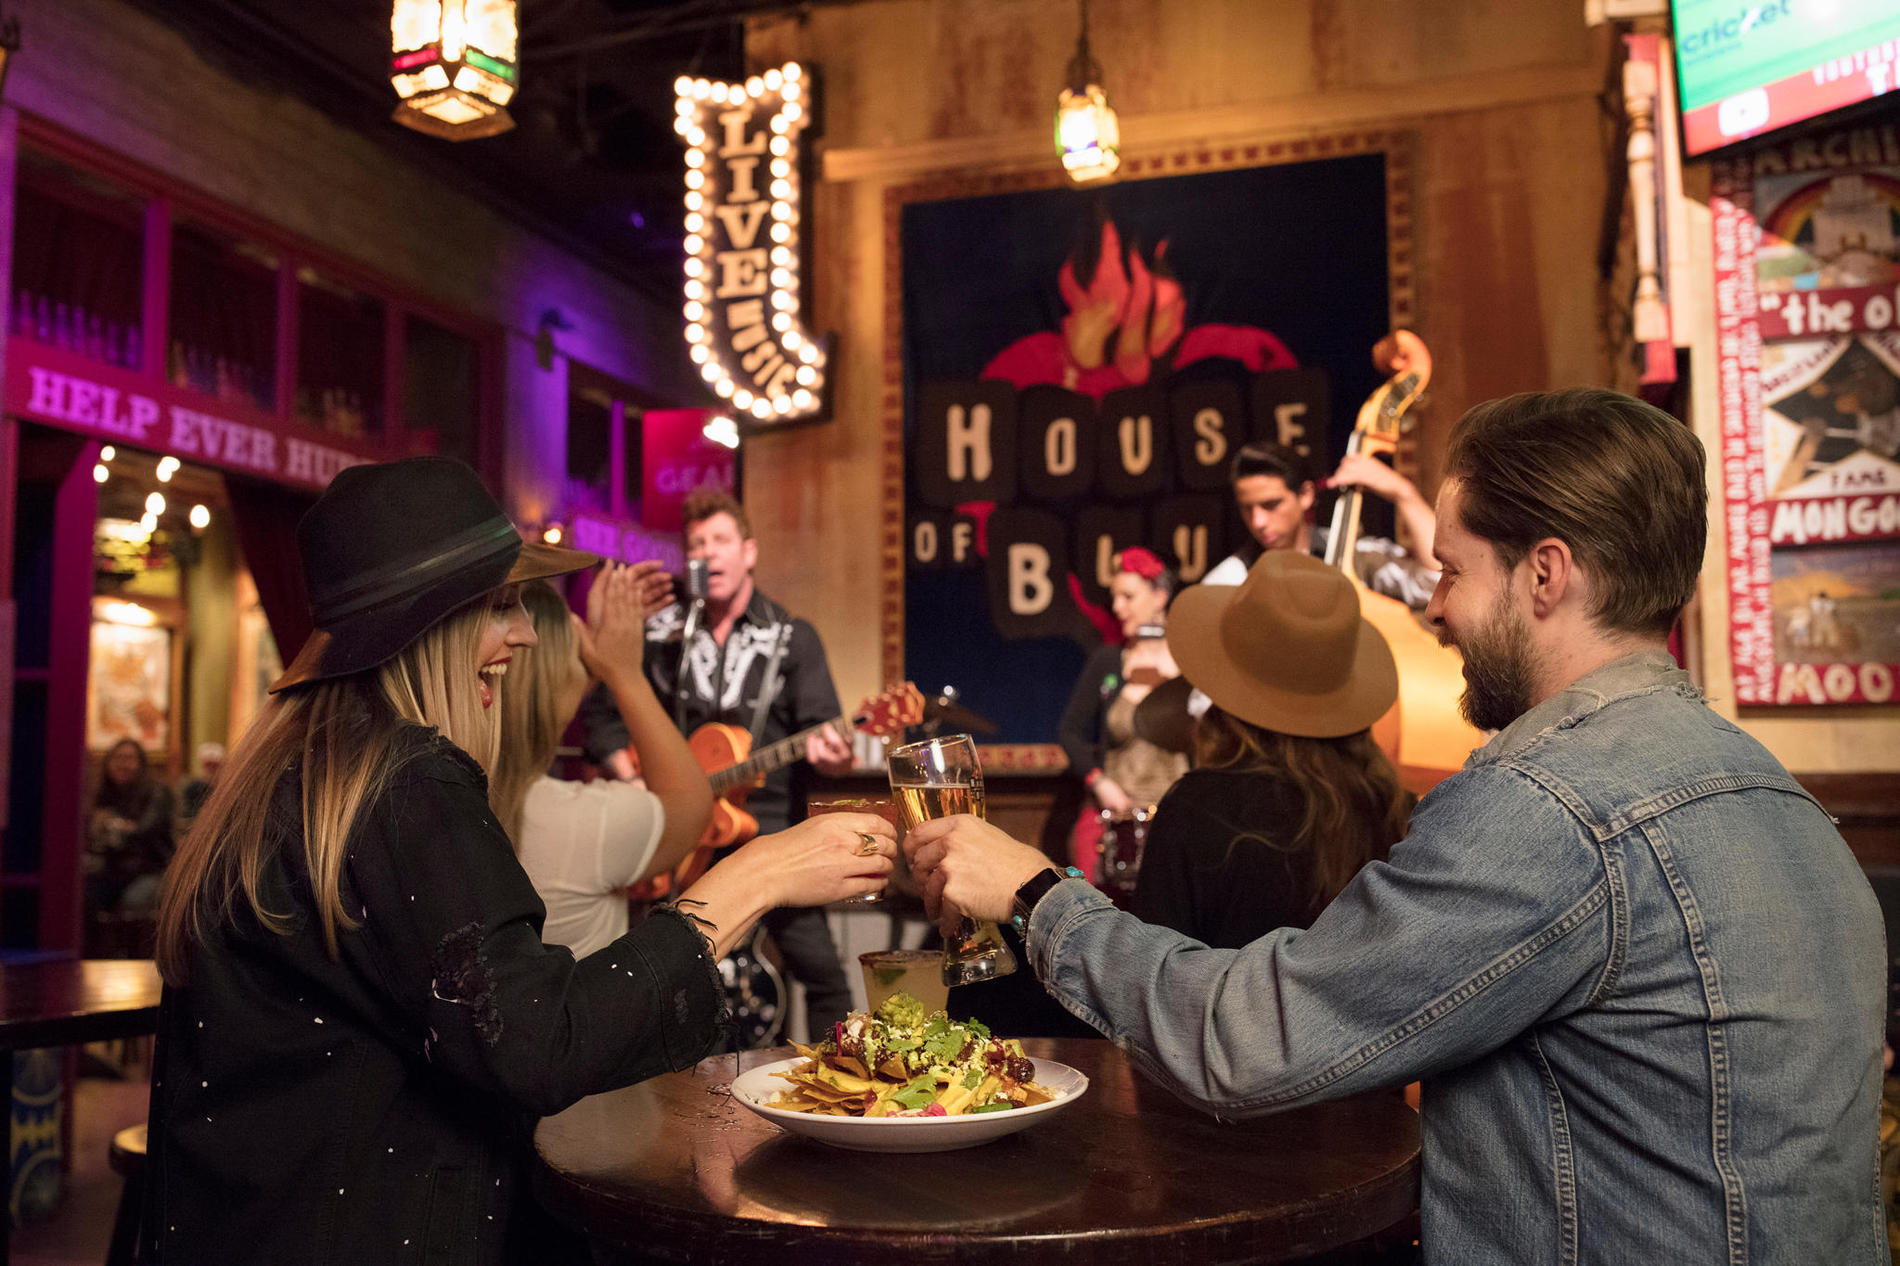 House of Blues Restaurant & Bar Events